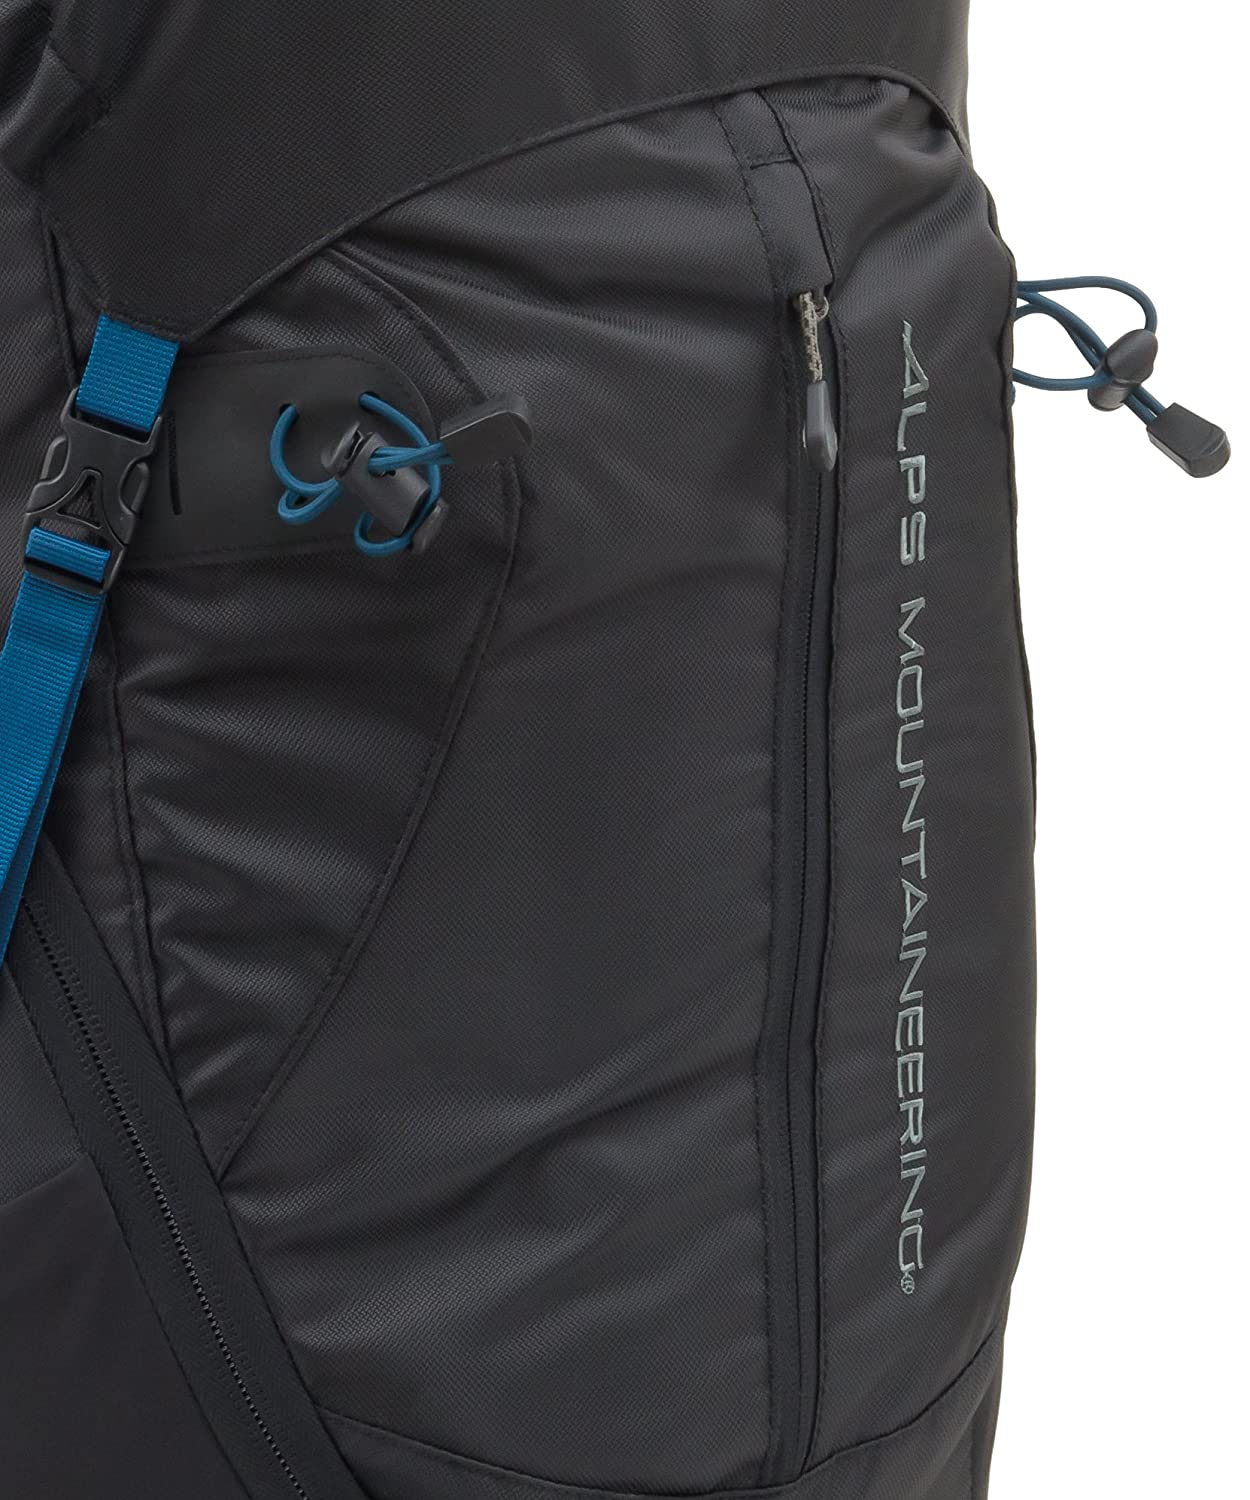 34503e817ef Amazon.com  ALPS Mountaineering Wasatch Internal Frame Pack, 55 Liters   Sports   Outdoors